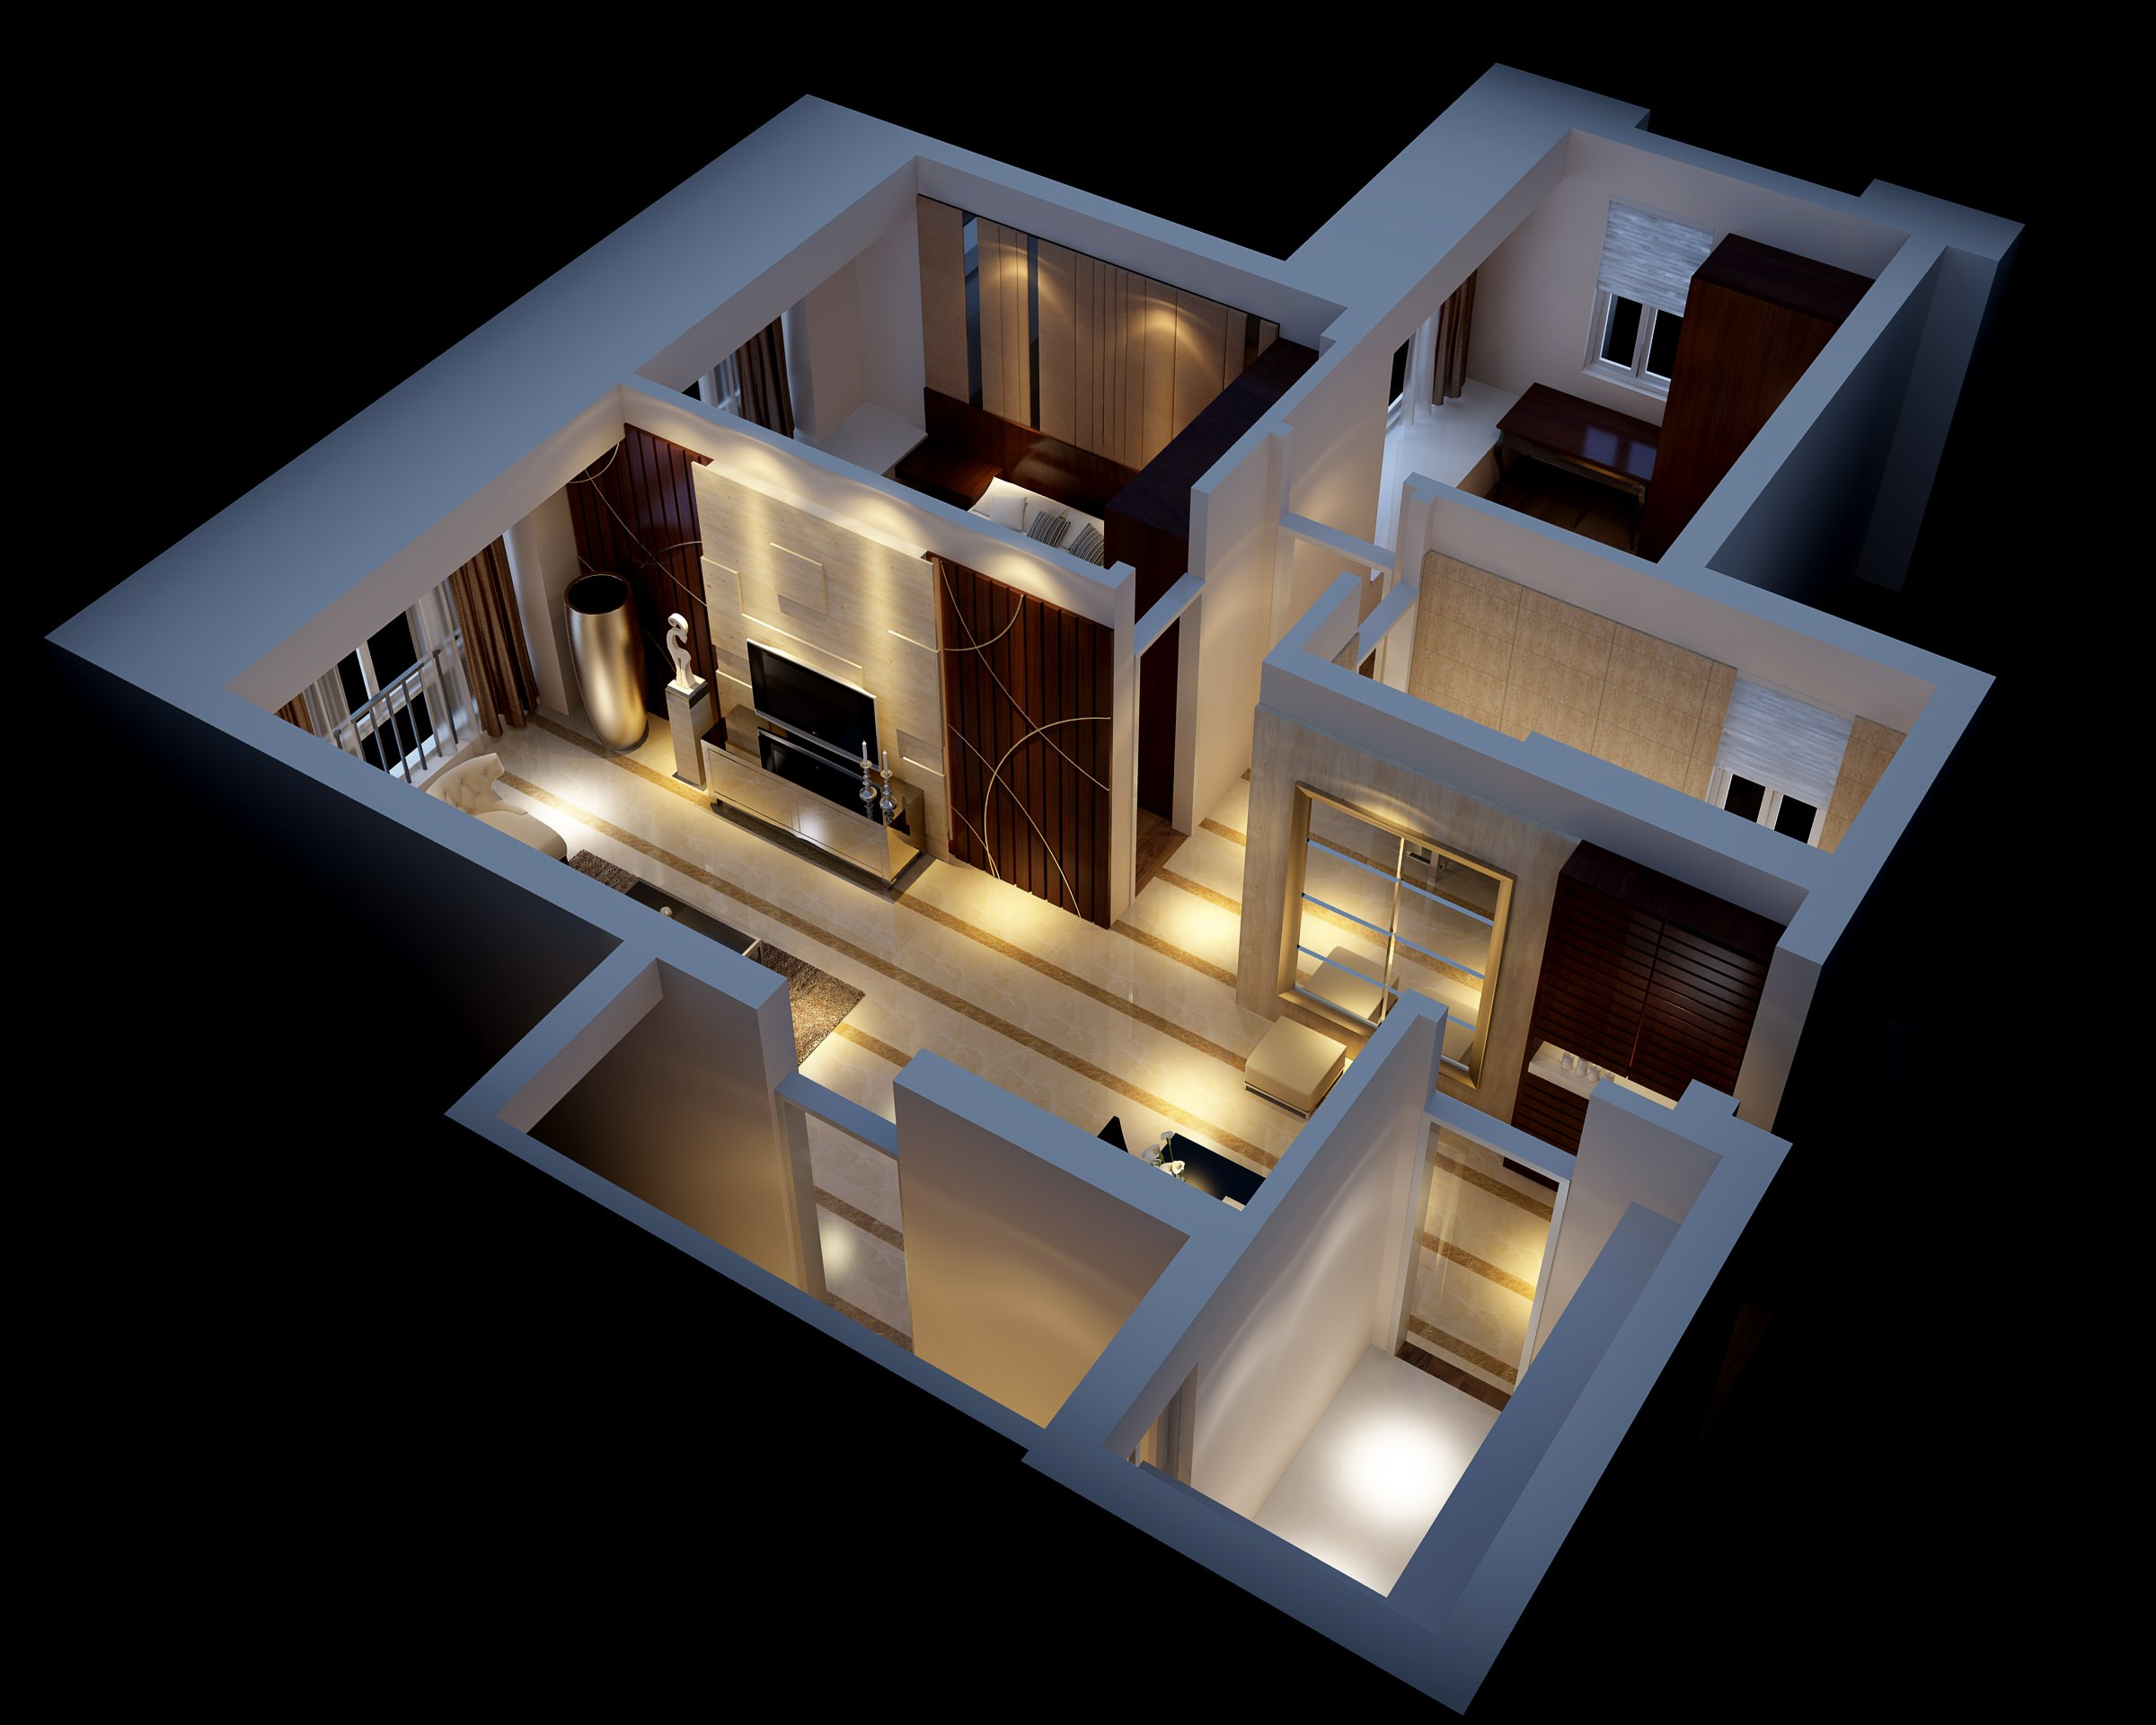 Modern house interior fully furnished 3d model max for Modern house model